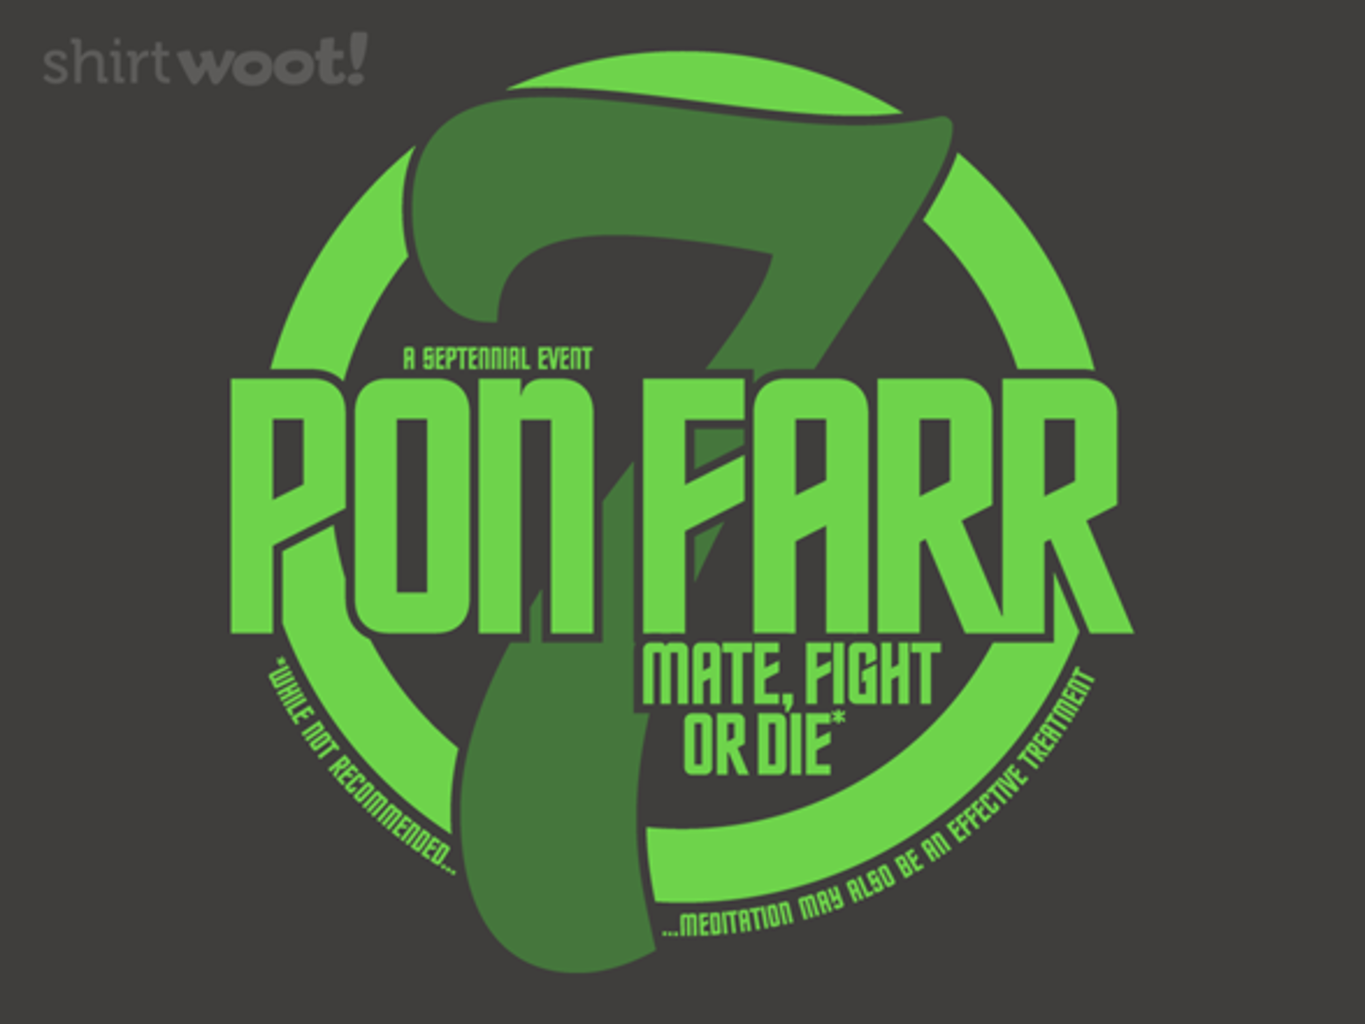 Woot!: Mate, Fight, Or Die